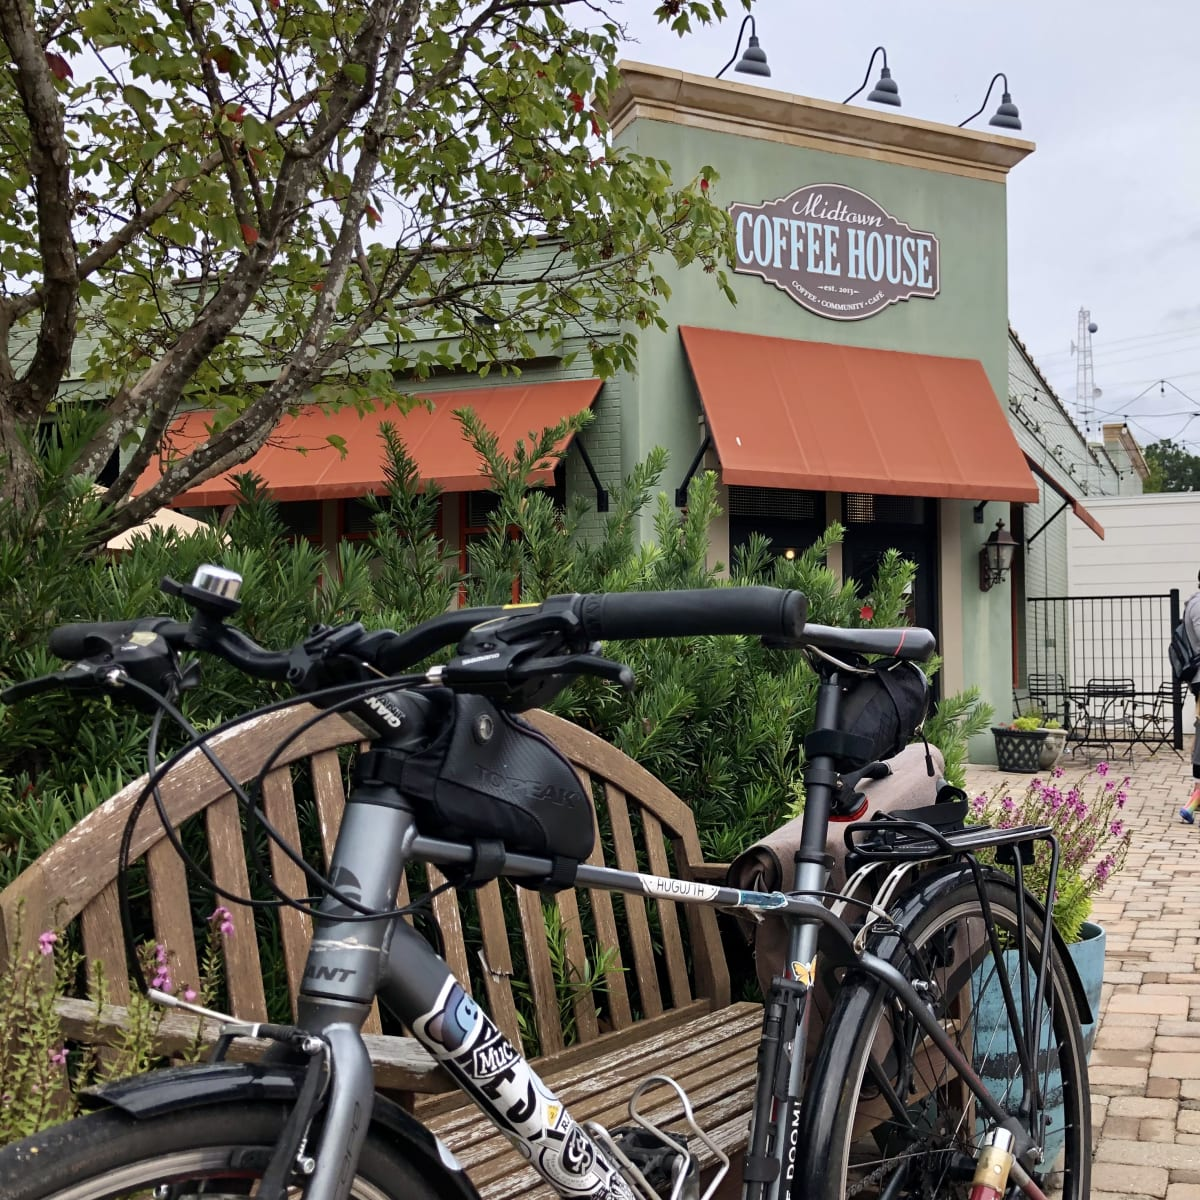 A photo of my bicycle in front of Midtown Coffee House.